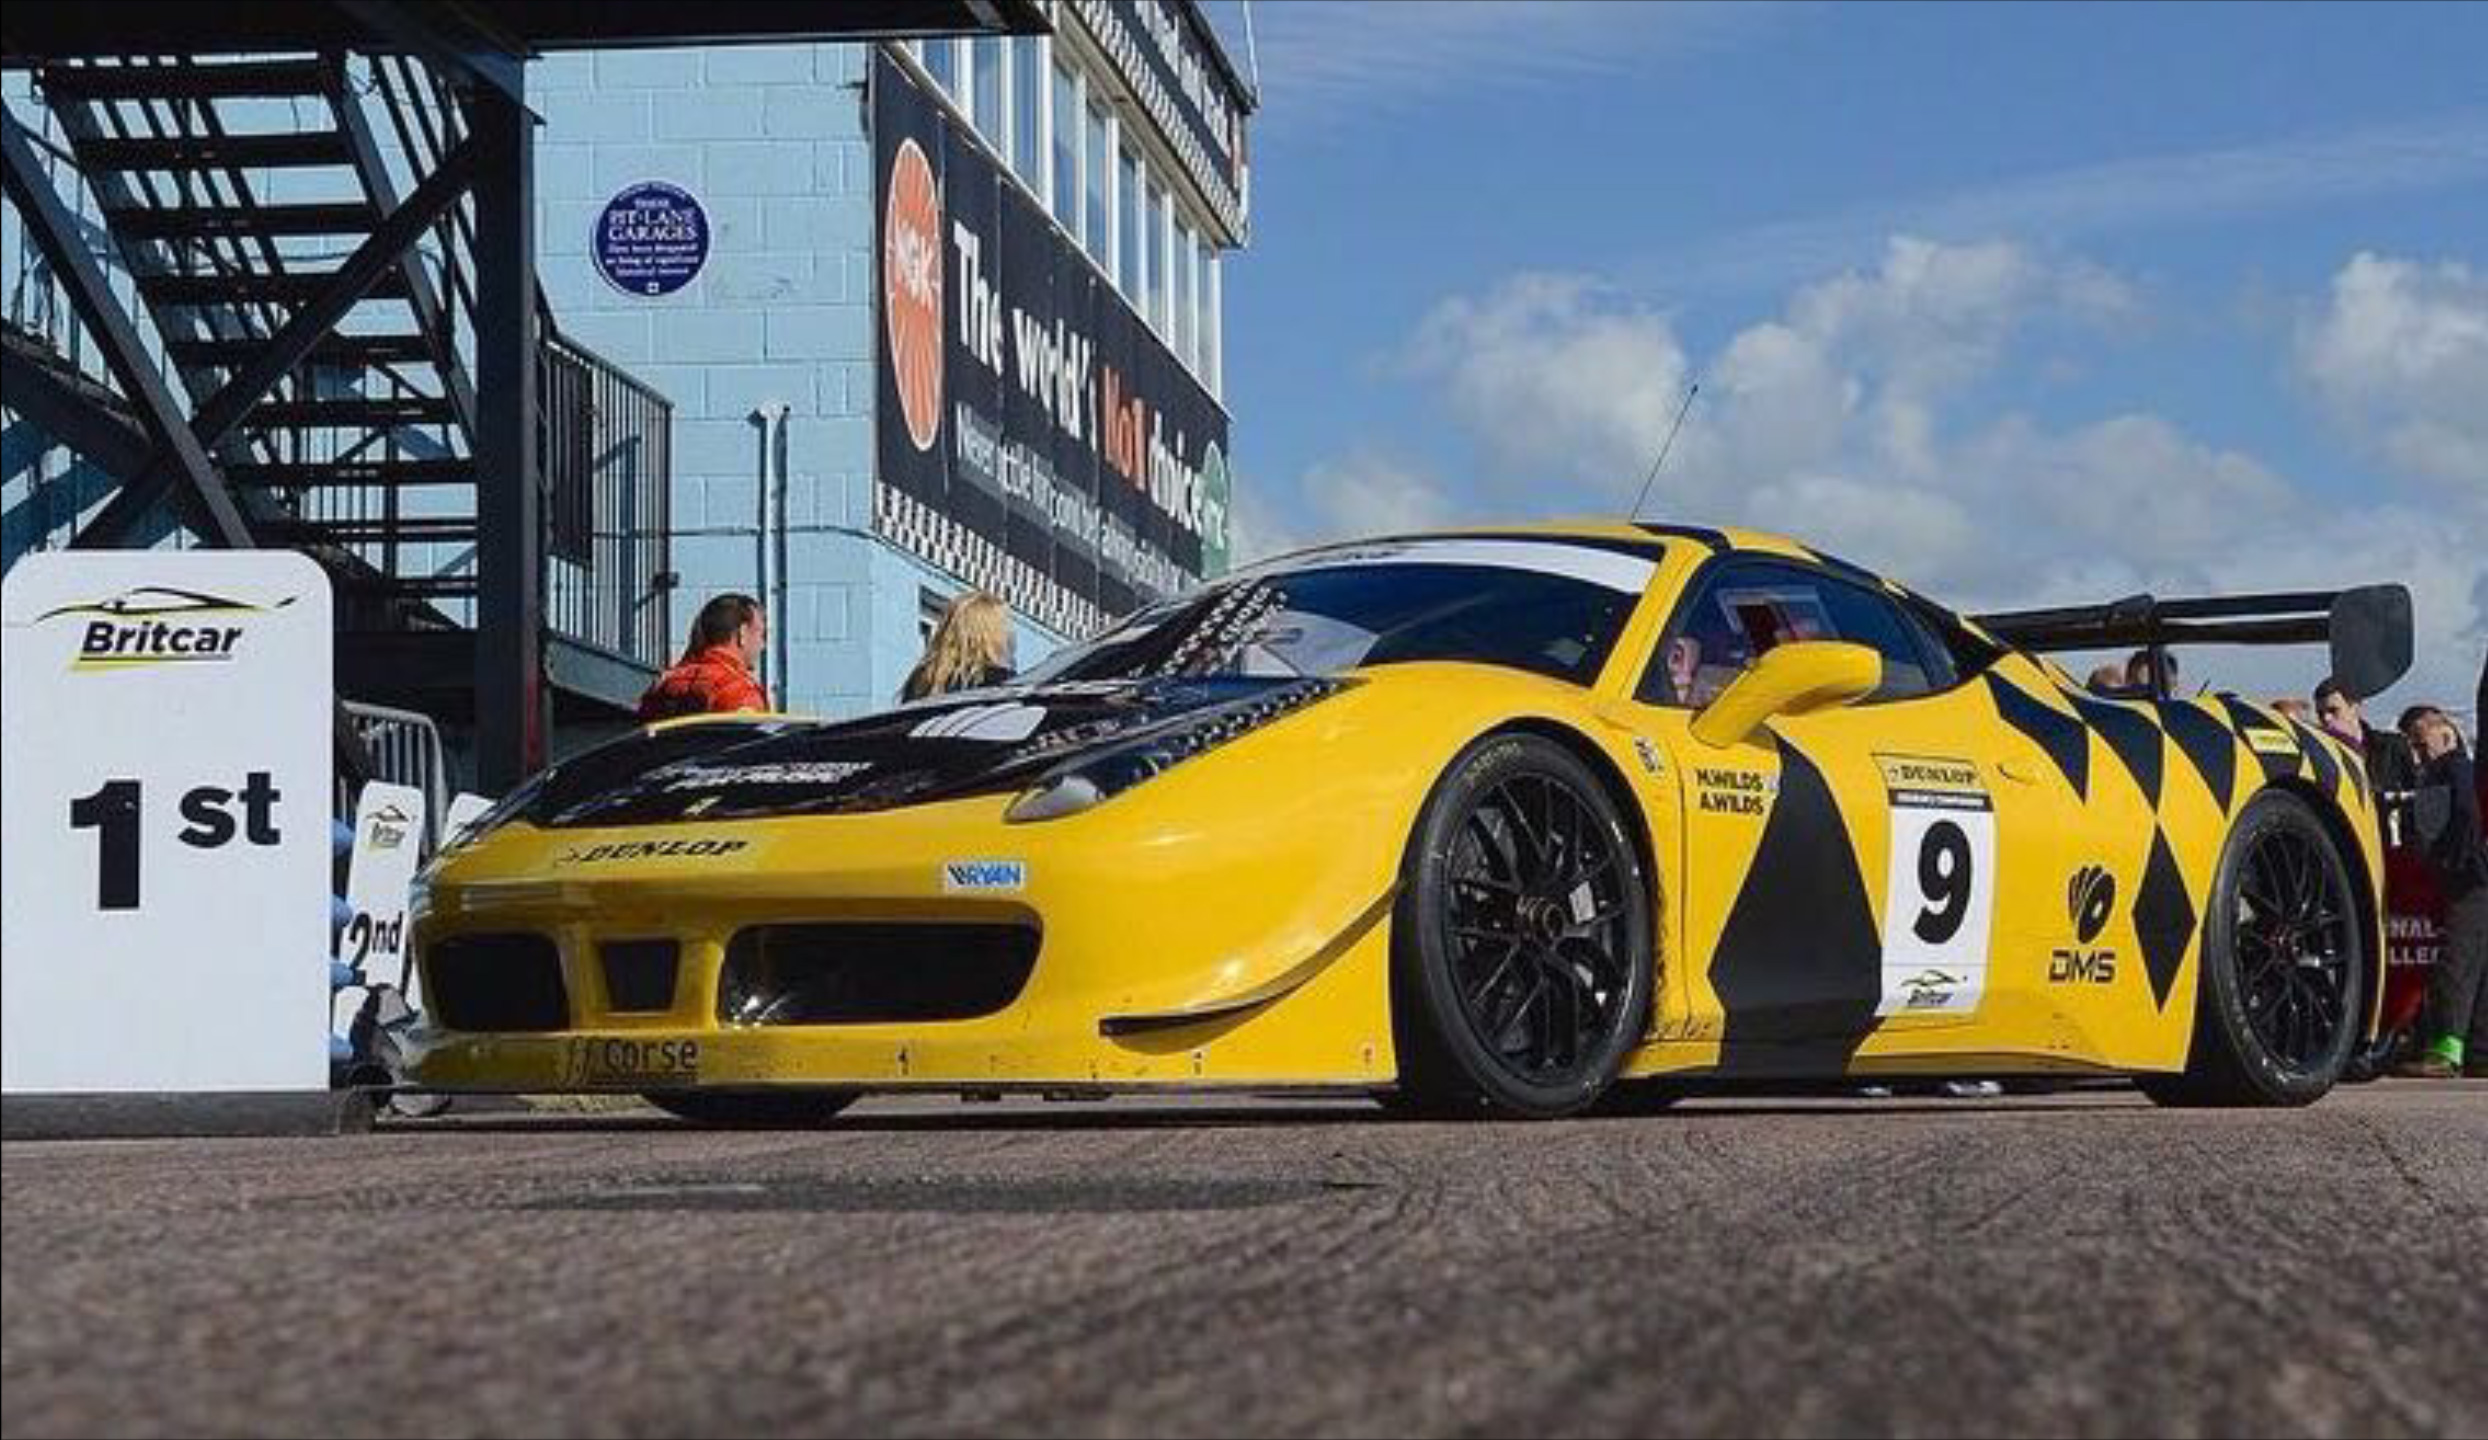 Class 2 of the 2016 Britcar_Dunlop Endurance Championship in a Ferrari 458GTC Evo